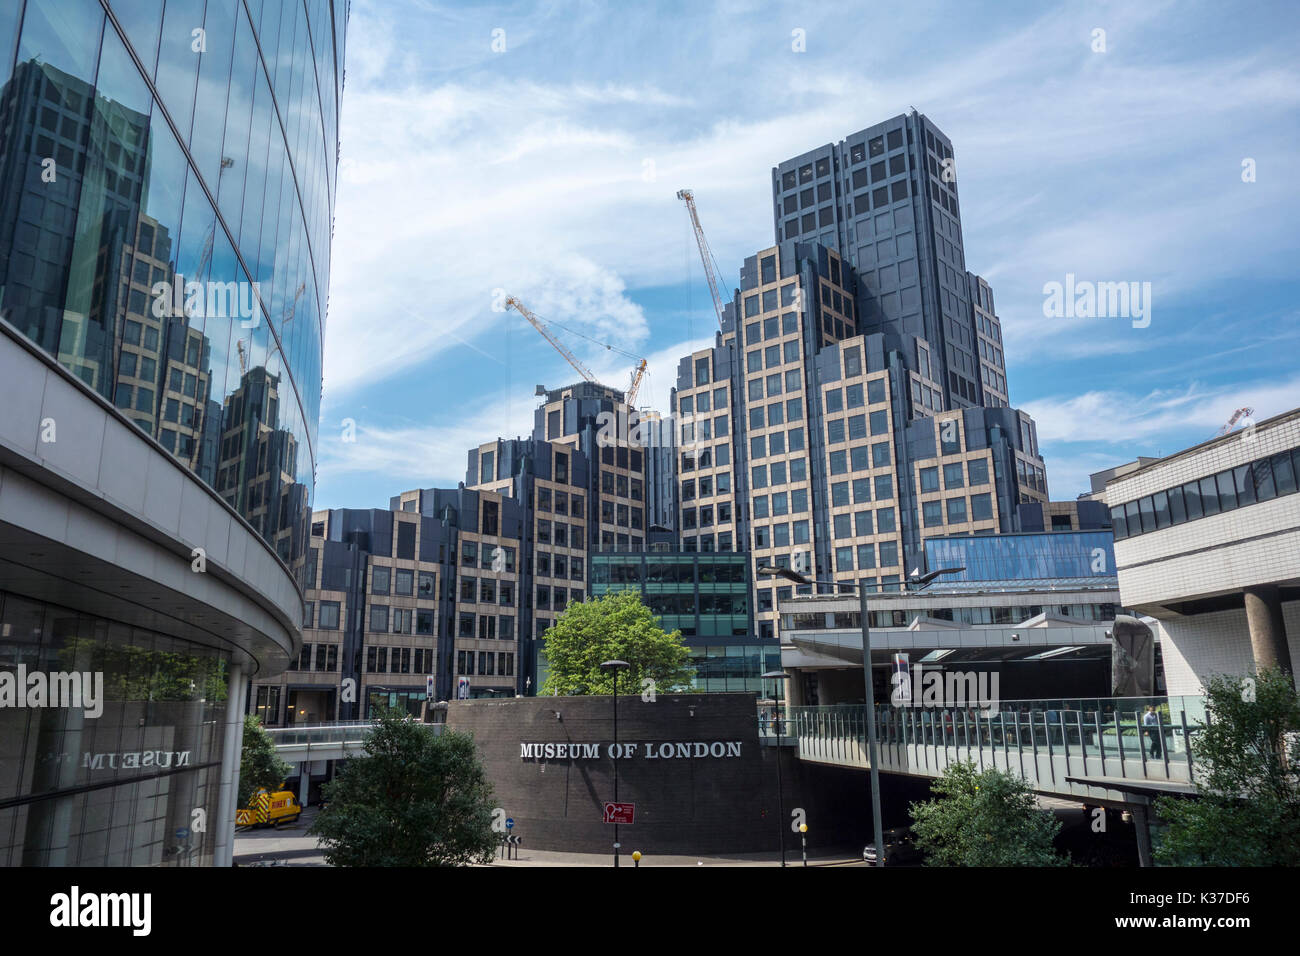 200 Aldersgate, high rise office buildings, Museum of London and London Wall. City of London, UK - Stock Image